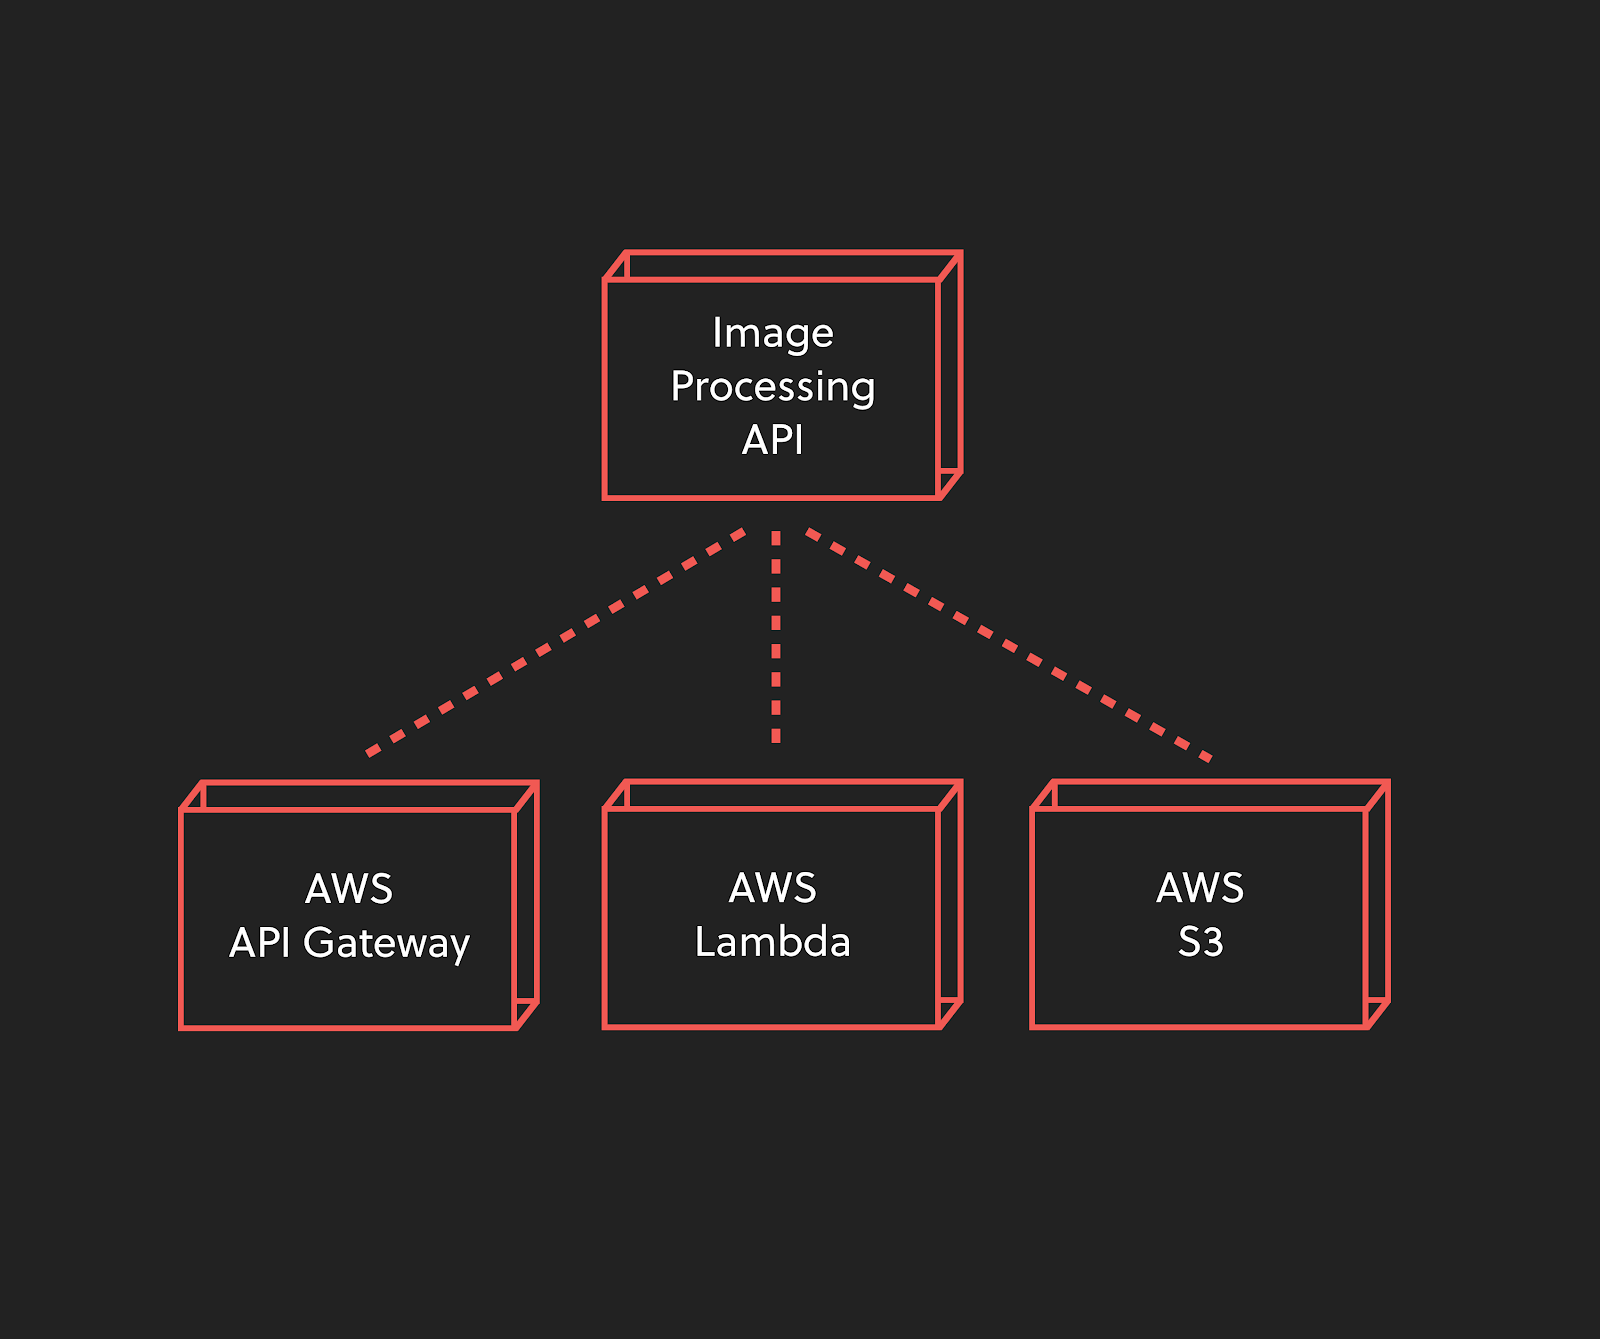 You want to write a serverless image processing API that pulls images from S3. To do so, you might create an AWS API Gateway endpoint to call an AWS Lambda function, which then pulls an image from the AWS S3 bucket and modifies it.